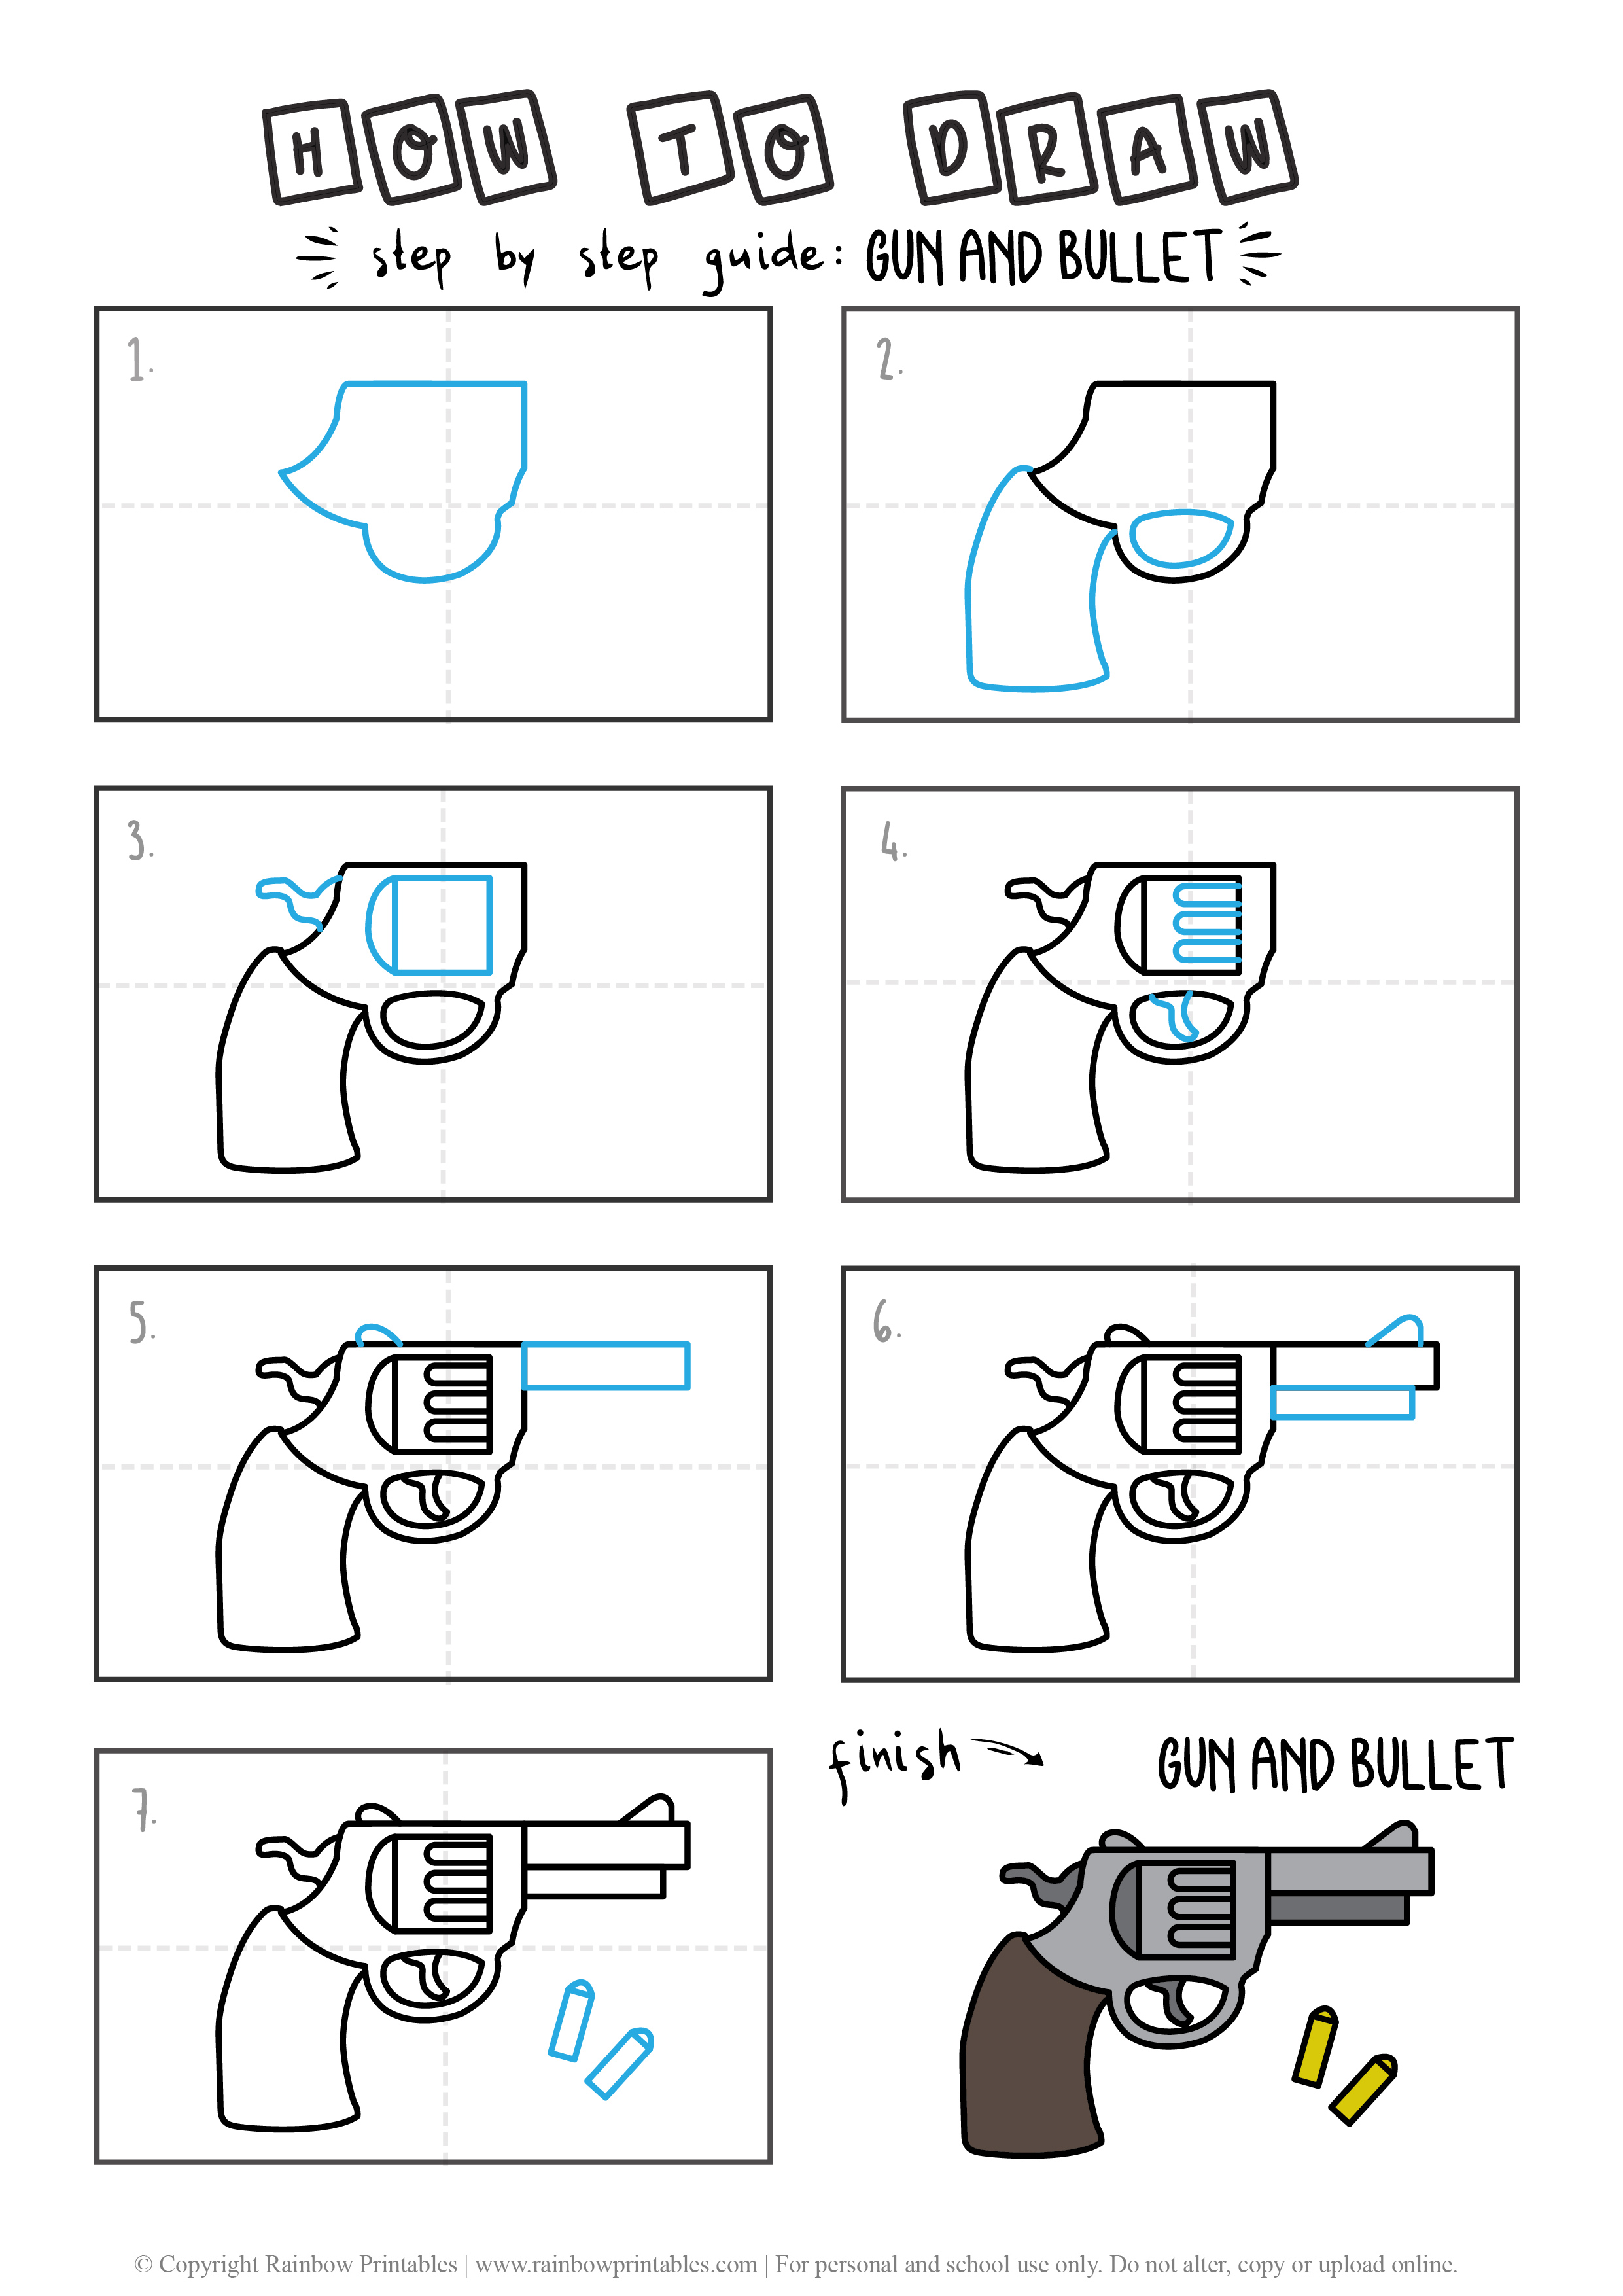 HOW TO DRAW GUN AND BULLETS ARMS WEAPON GUIDE ILLUSTRATION STEP BY STEP EASY SIMPLE FOR KIDS